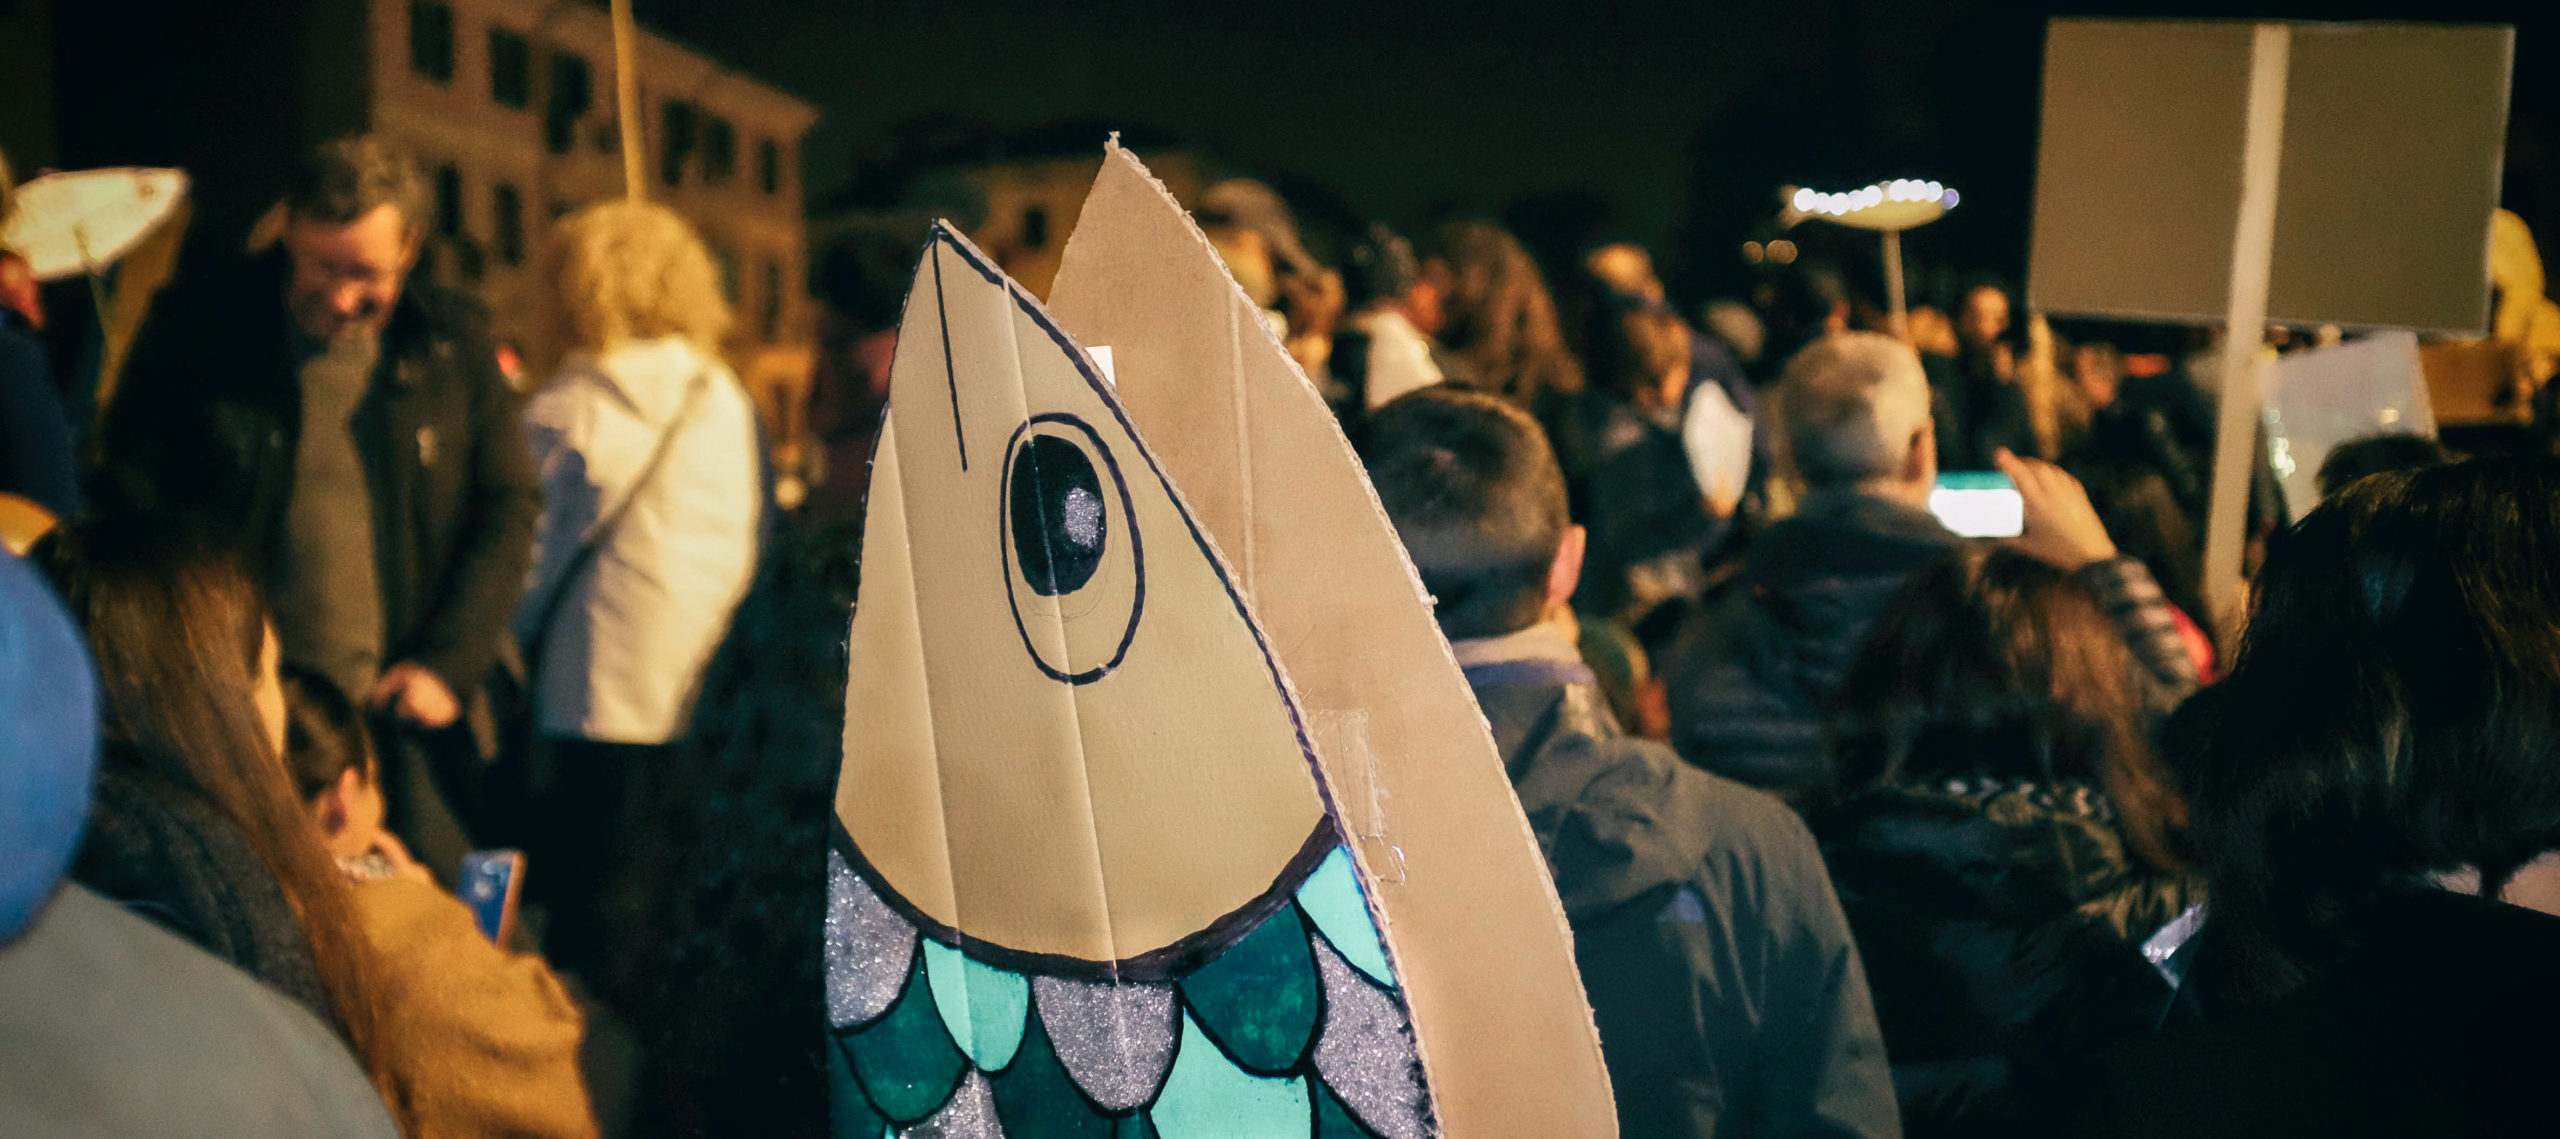 Photograph of protestors holding up sardine-shaped signs at a flash mob in Verona, Italy.